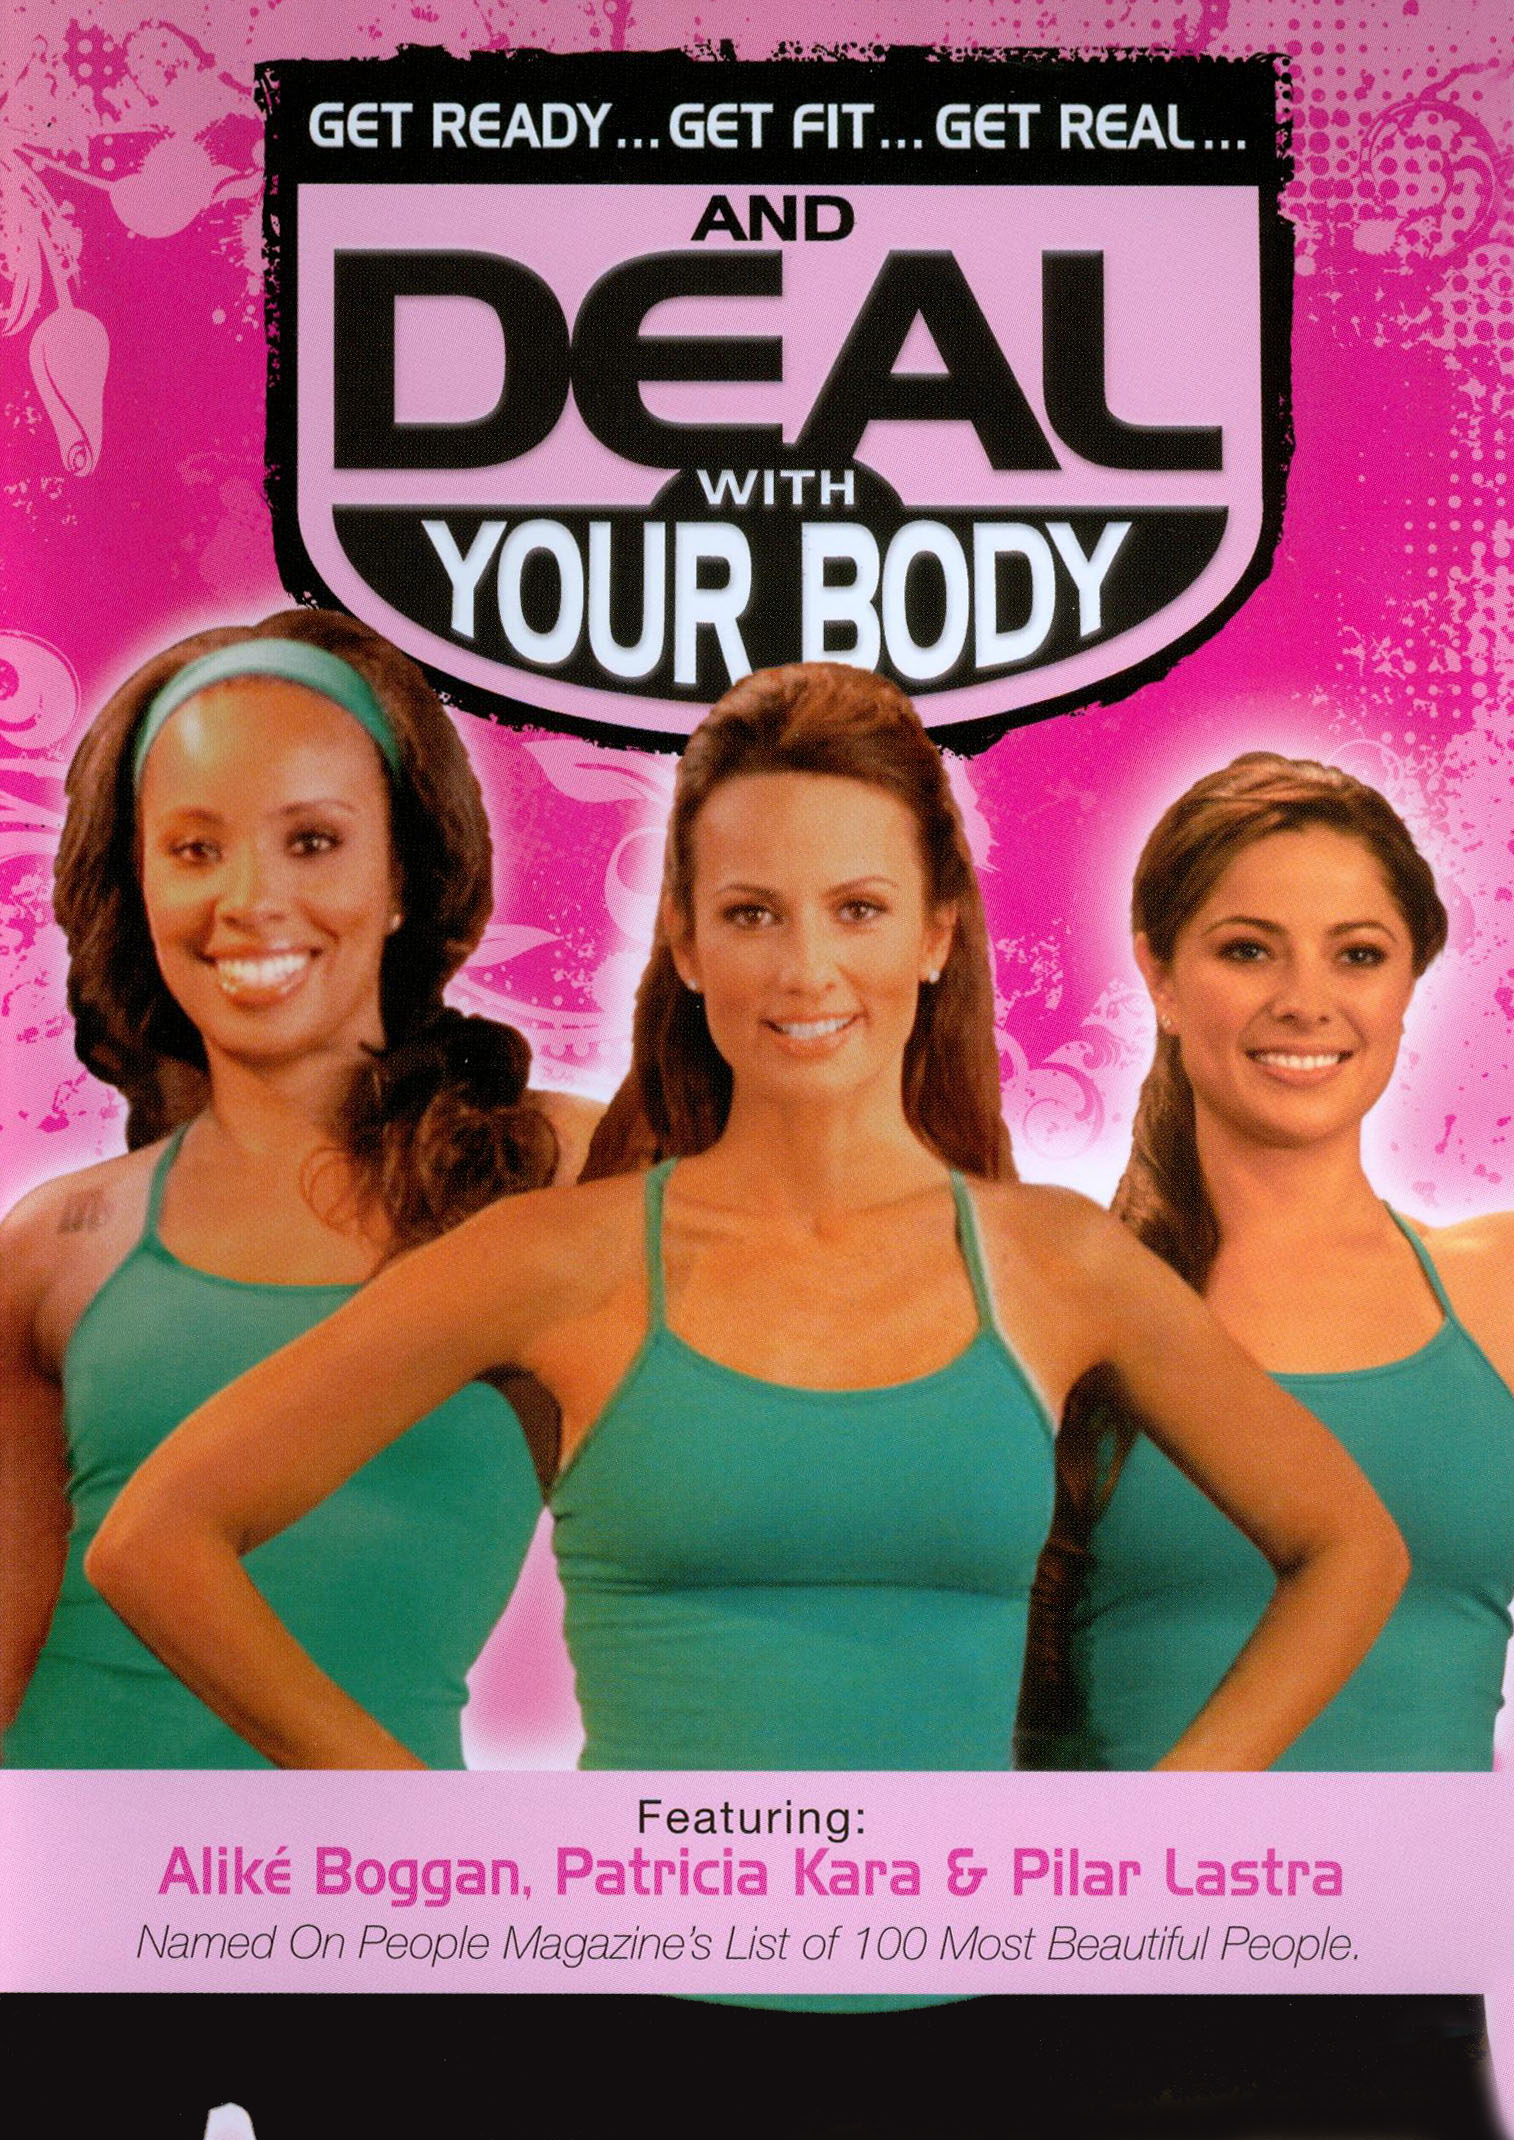 Get Ready... Get Fit... Get Real... and Deal with Your Body